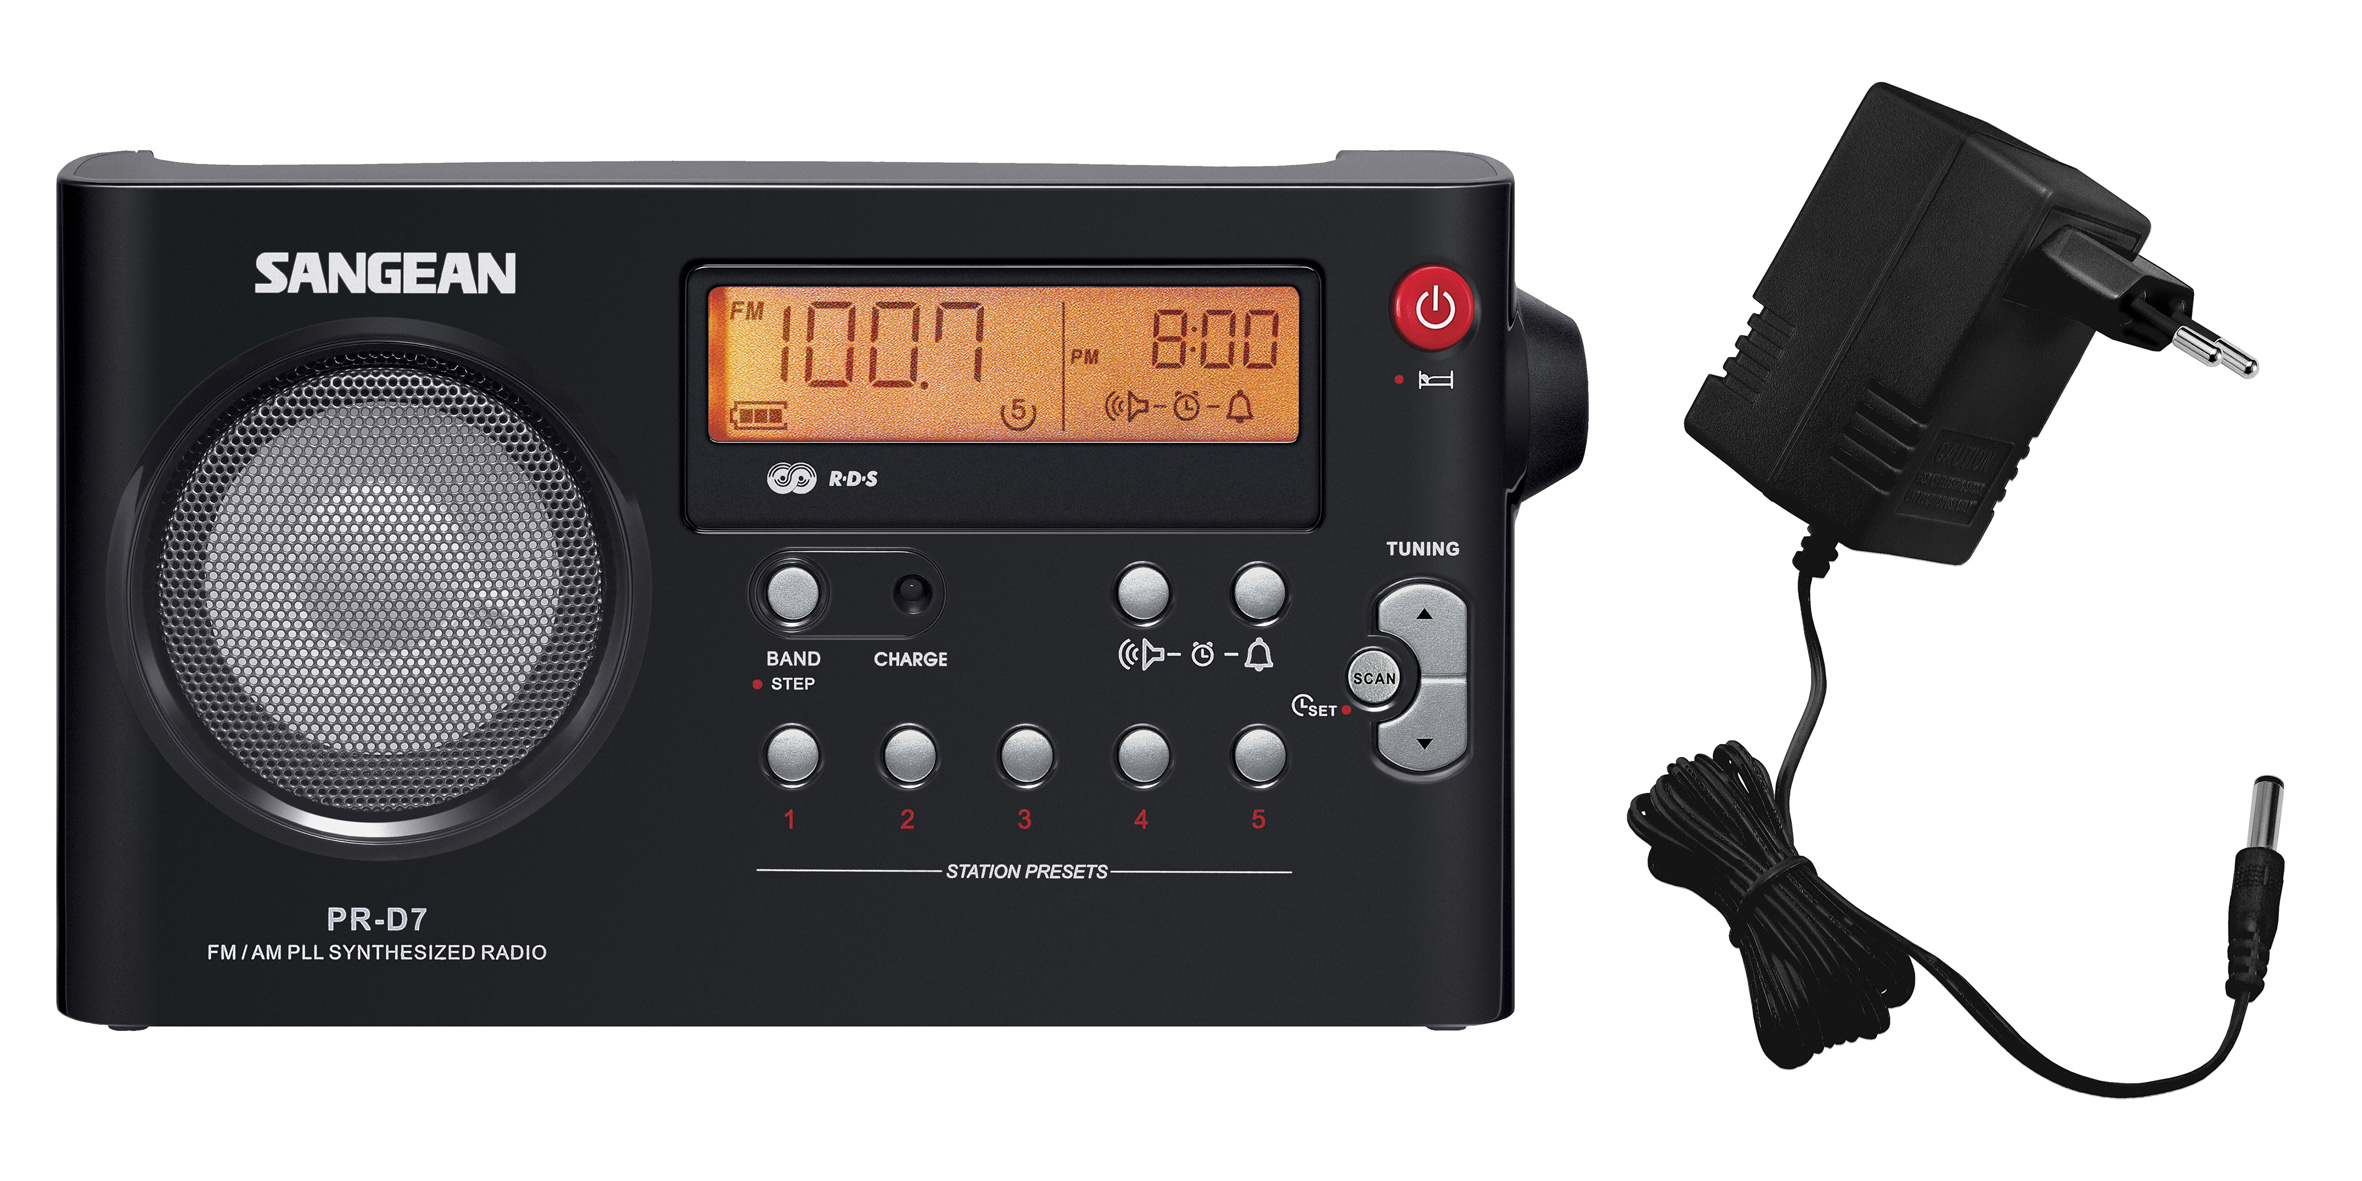 PR-D7, portable radio, incl. adaptor, black